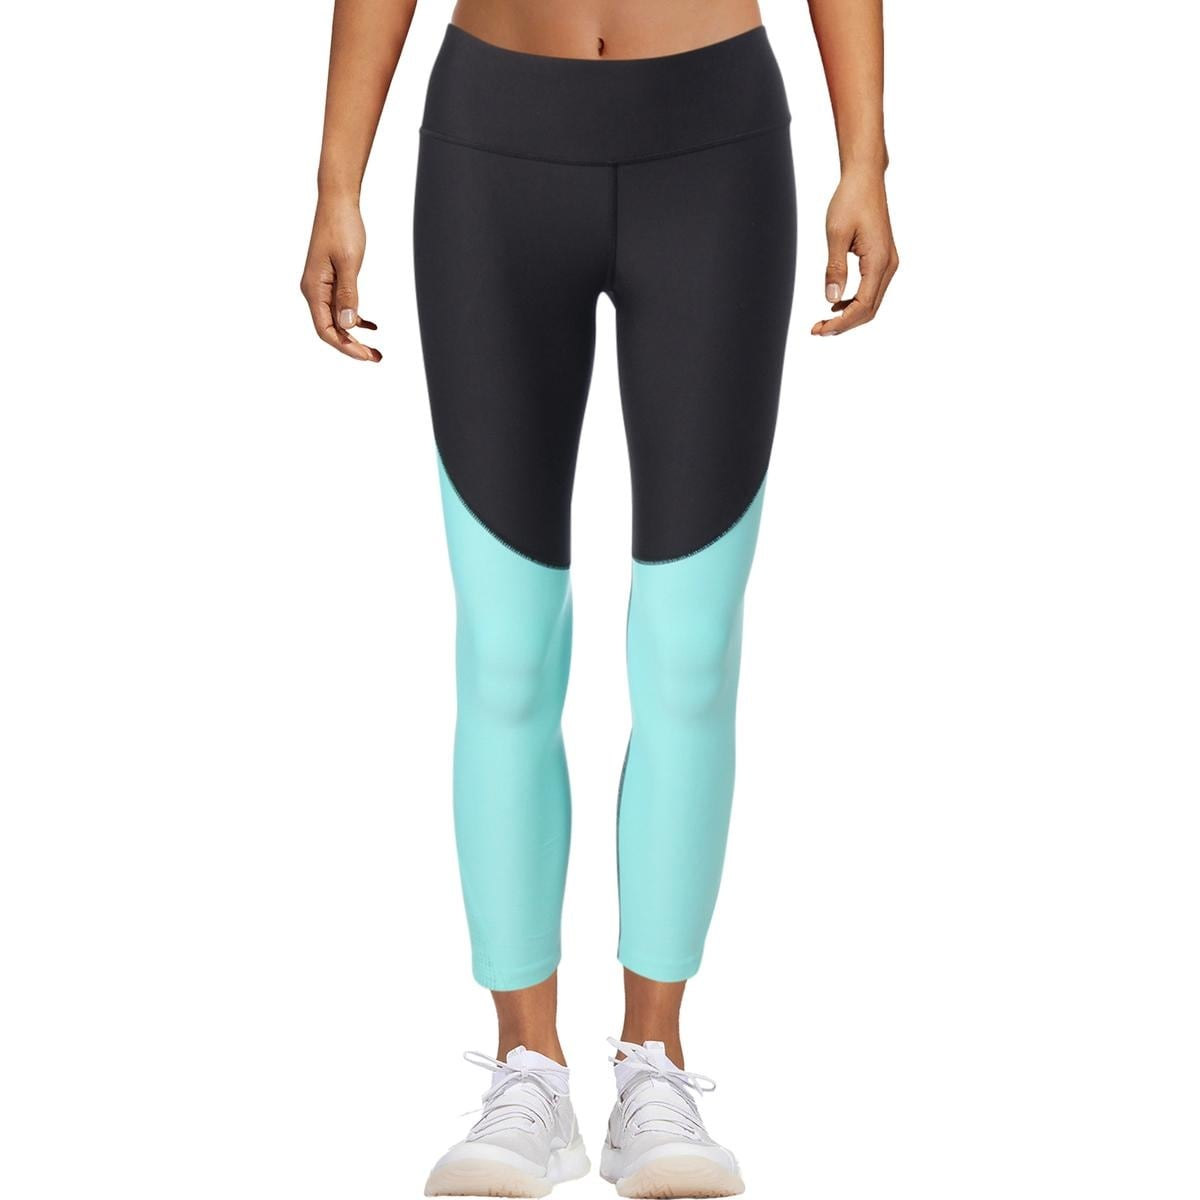 643c61c927c49c Shop Under Armour Womens Heat Gear Athletic Leggings Mesh Inset Fitted -  Free Shipping On Orders Over $45 - Overstock - 25669801